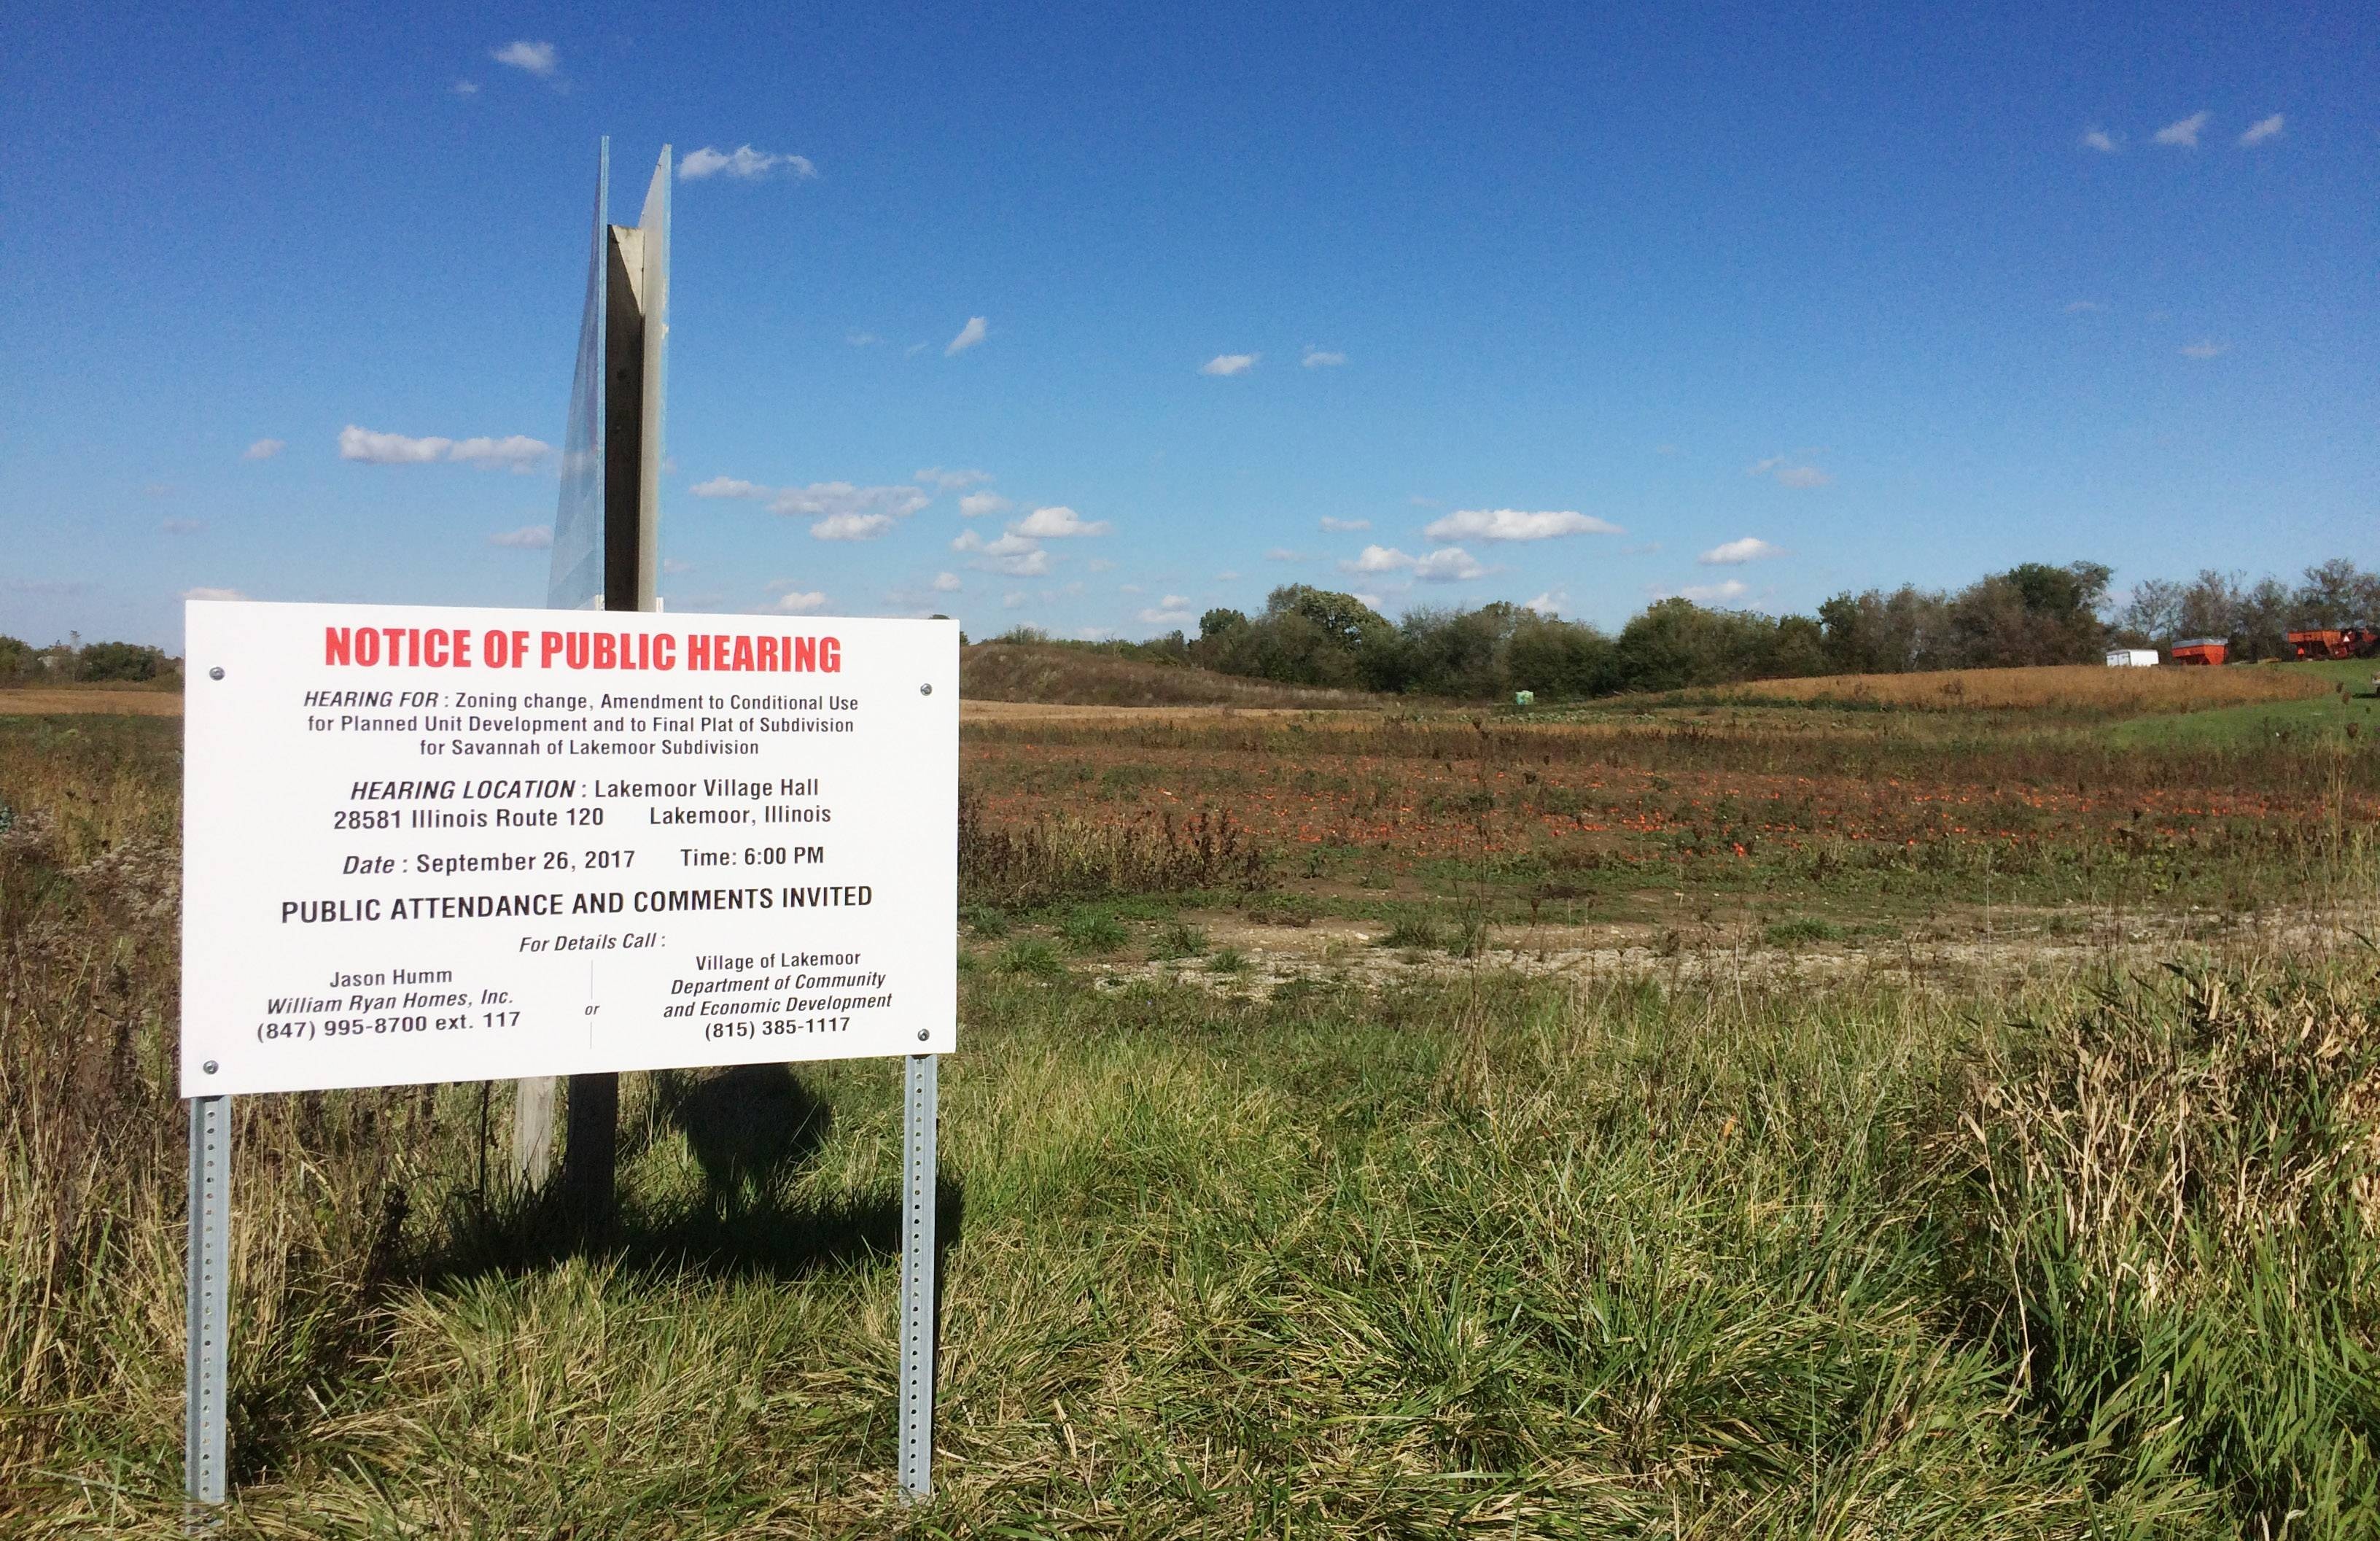 Public hearings have been held and approvals given for the 75-home Savannah subdivision by William Ryan Homes north of Route 120 in Lakemoor.